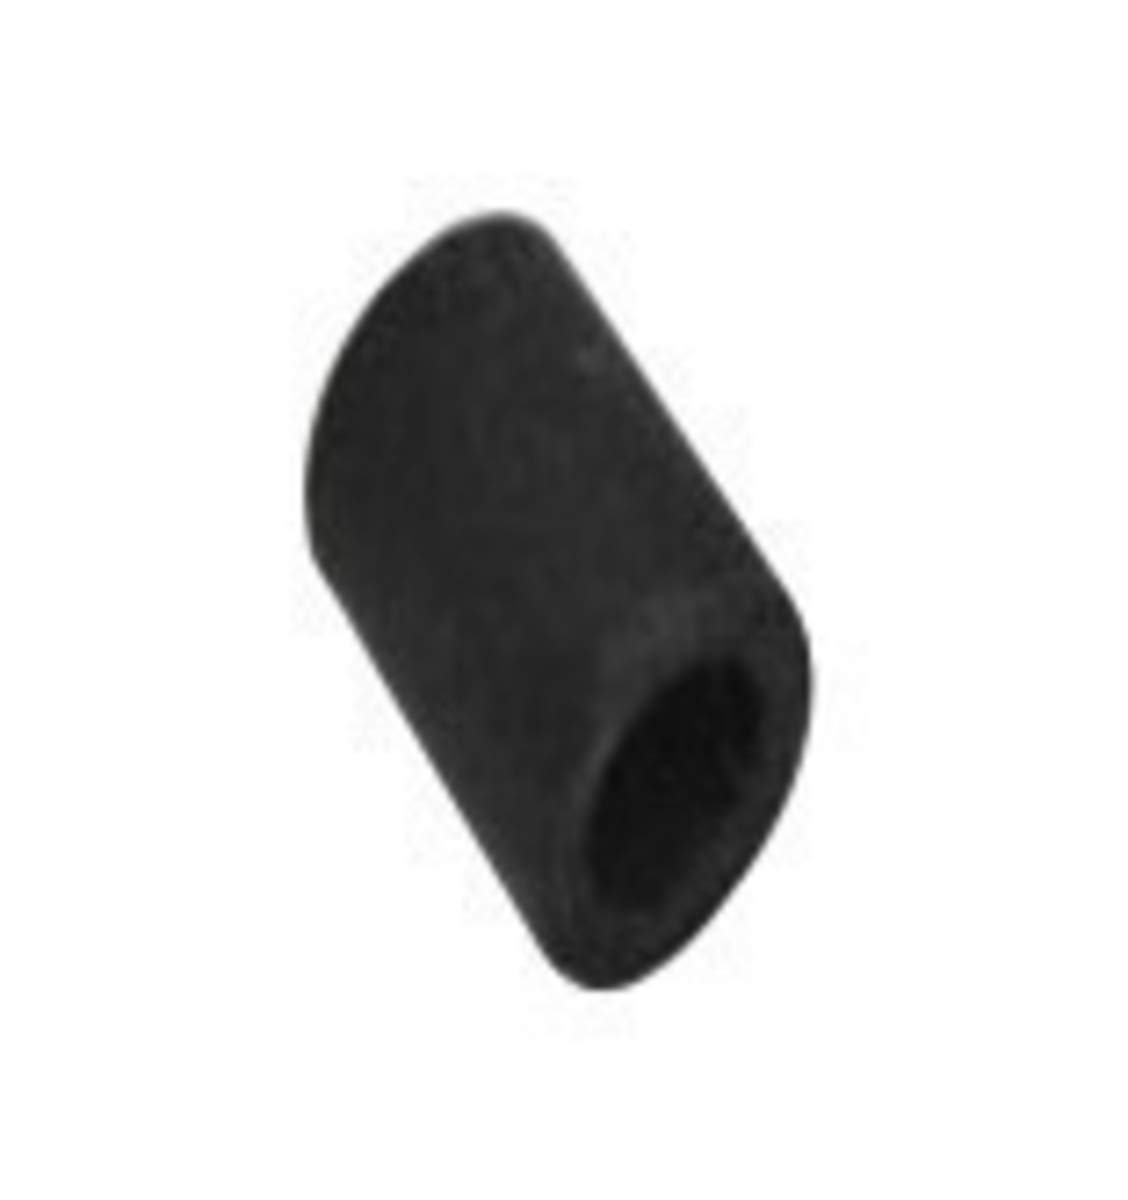 Miller Replacement Brake Pad For Spoolmatic 30 A Spool Gun, Package Size: 2 Each